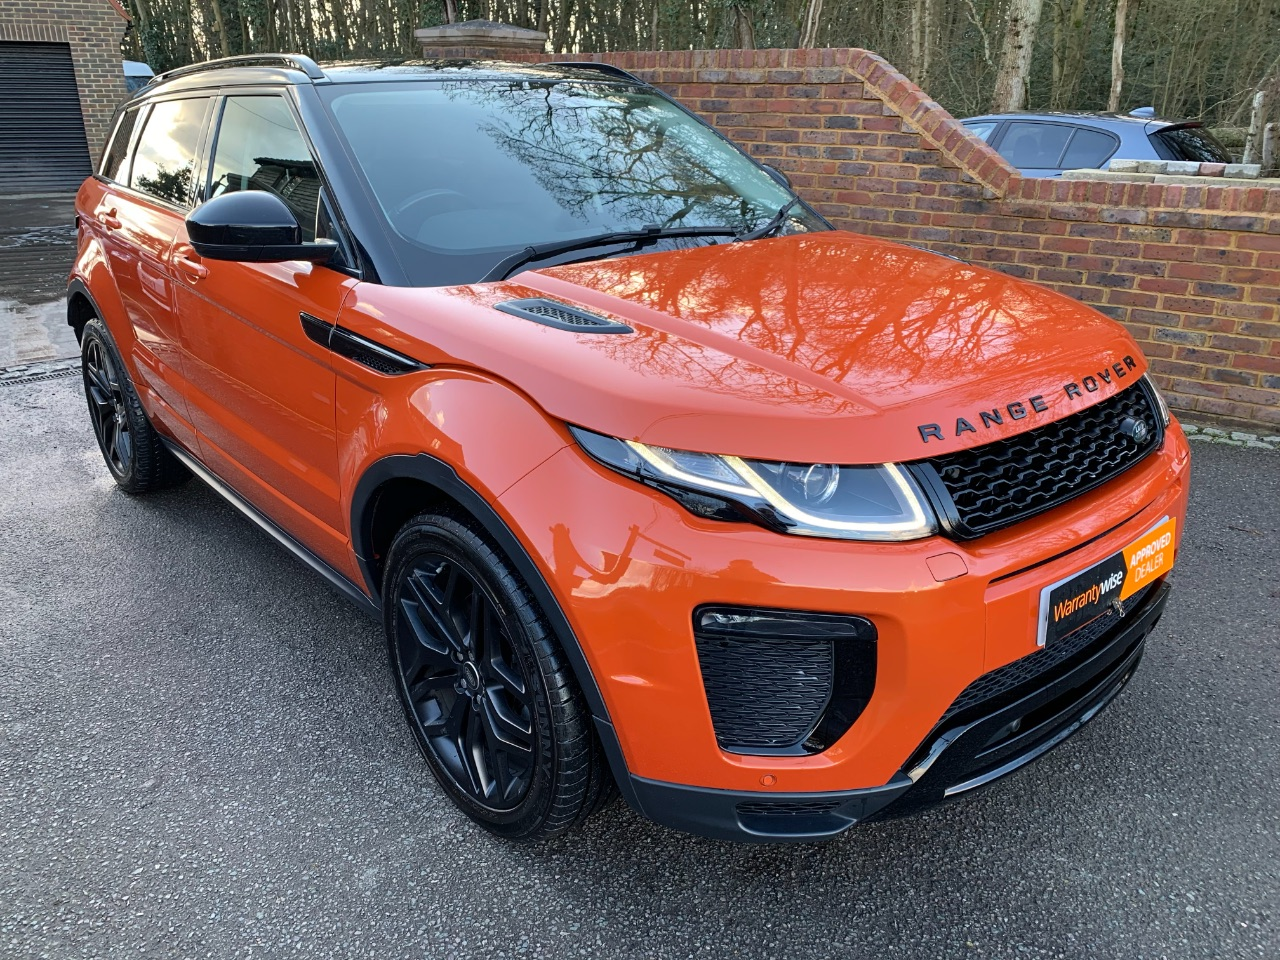 Land Rover Range Rover Evoque 2.0 TD4 HSE Dynamic 5dr Auto + Black Pack + Pan Roof Estate Diesel Orange at A Touch of Class Kingsnorth